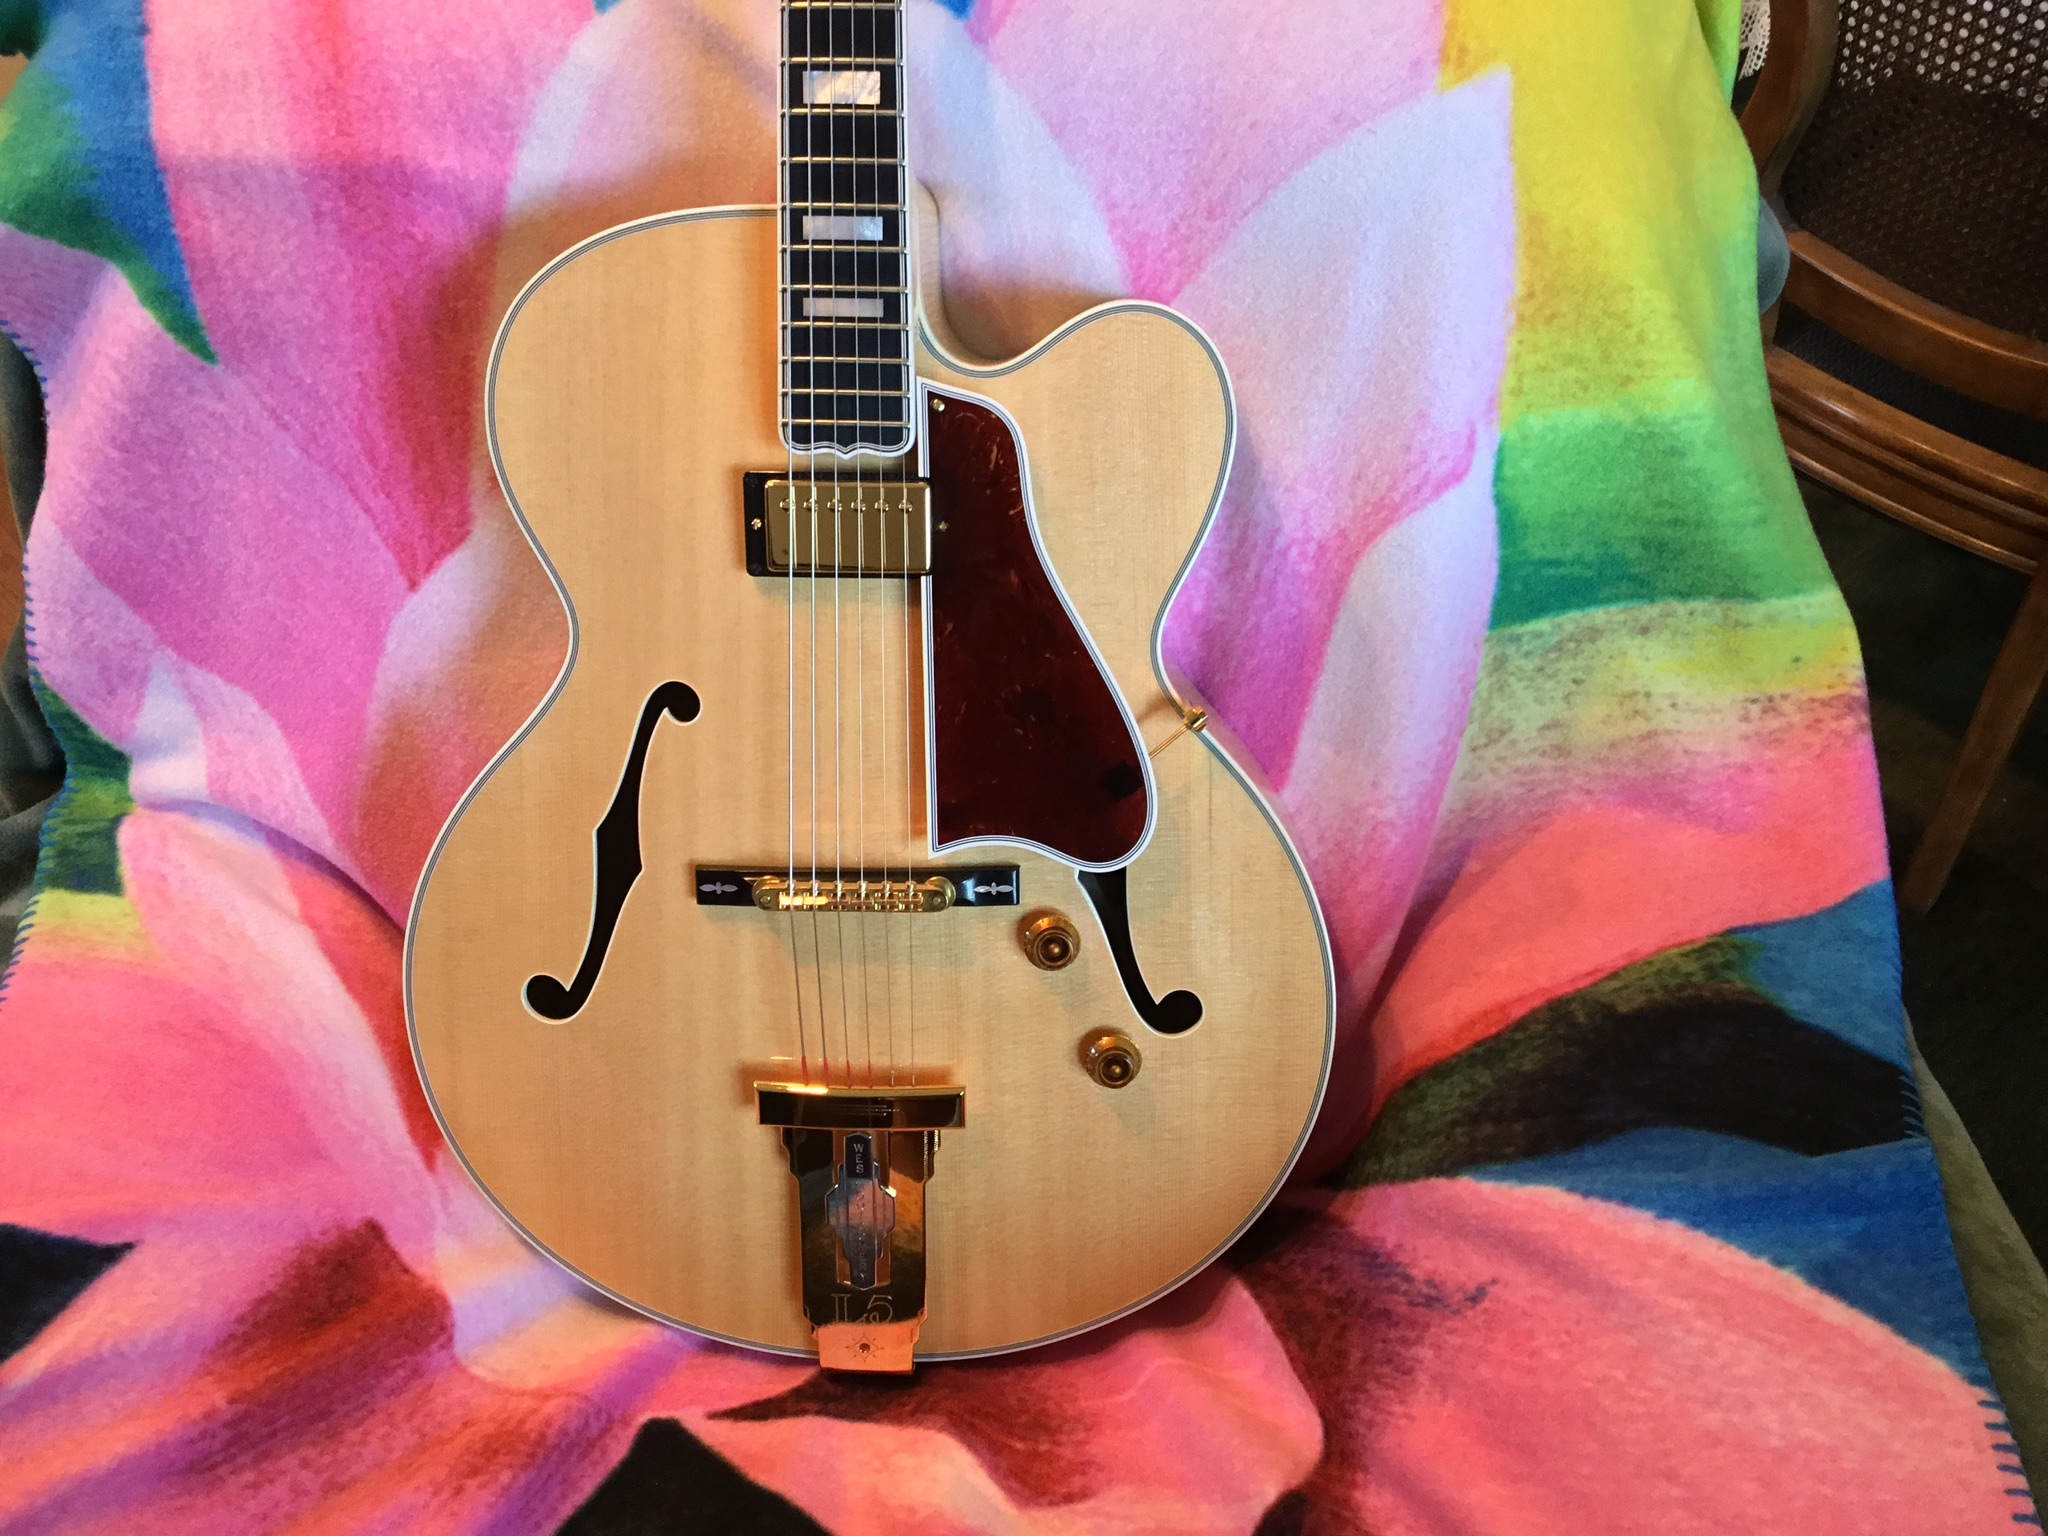 Dream guitar buying issues-6cc5c5c8-3036-4868-8268-ebb82cced8d2-jpeg